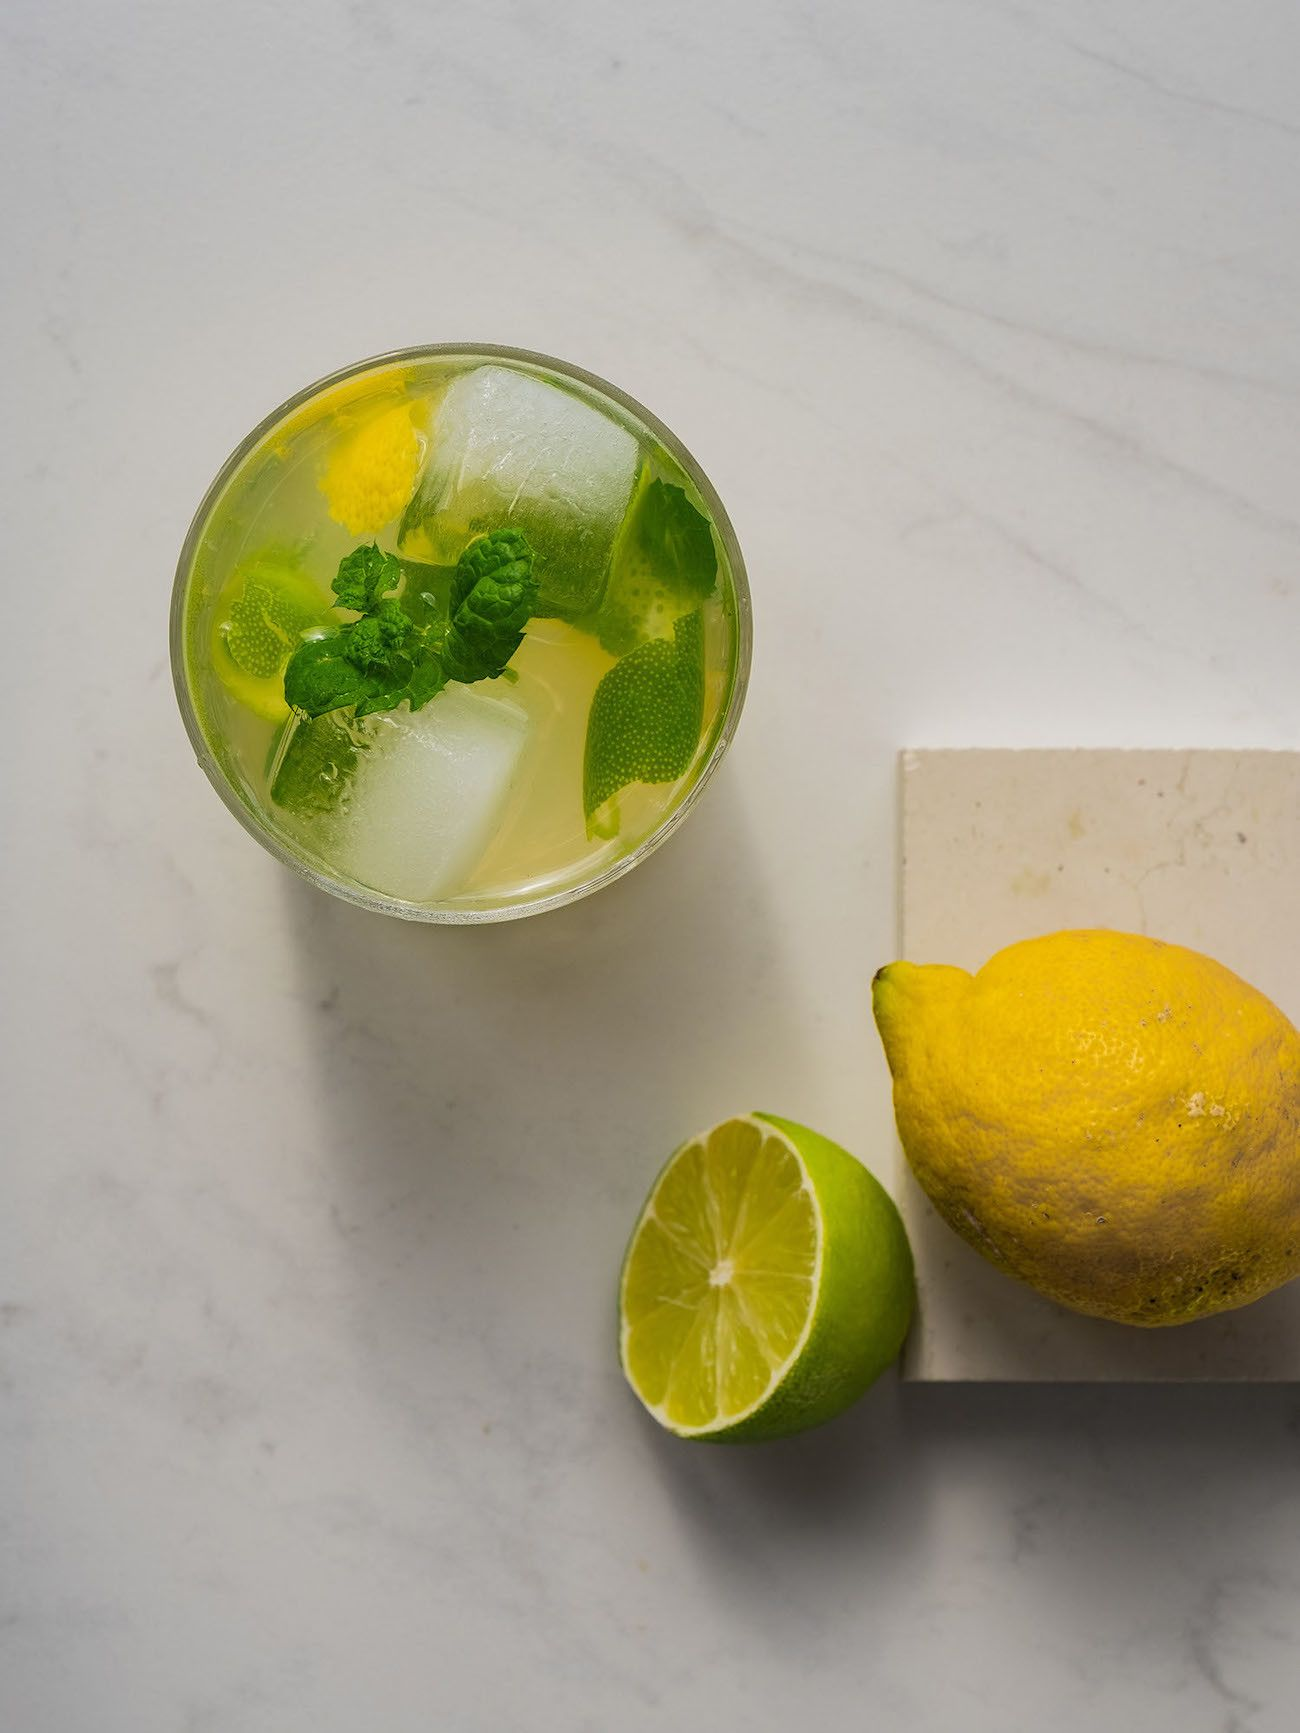 Foodblog About Fuel, Rezept Power Hugo, Saint Germain, Glas, Drink, Zitrone, Limette